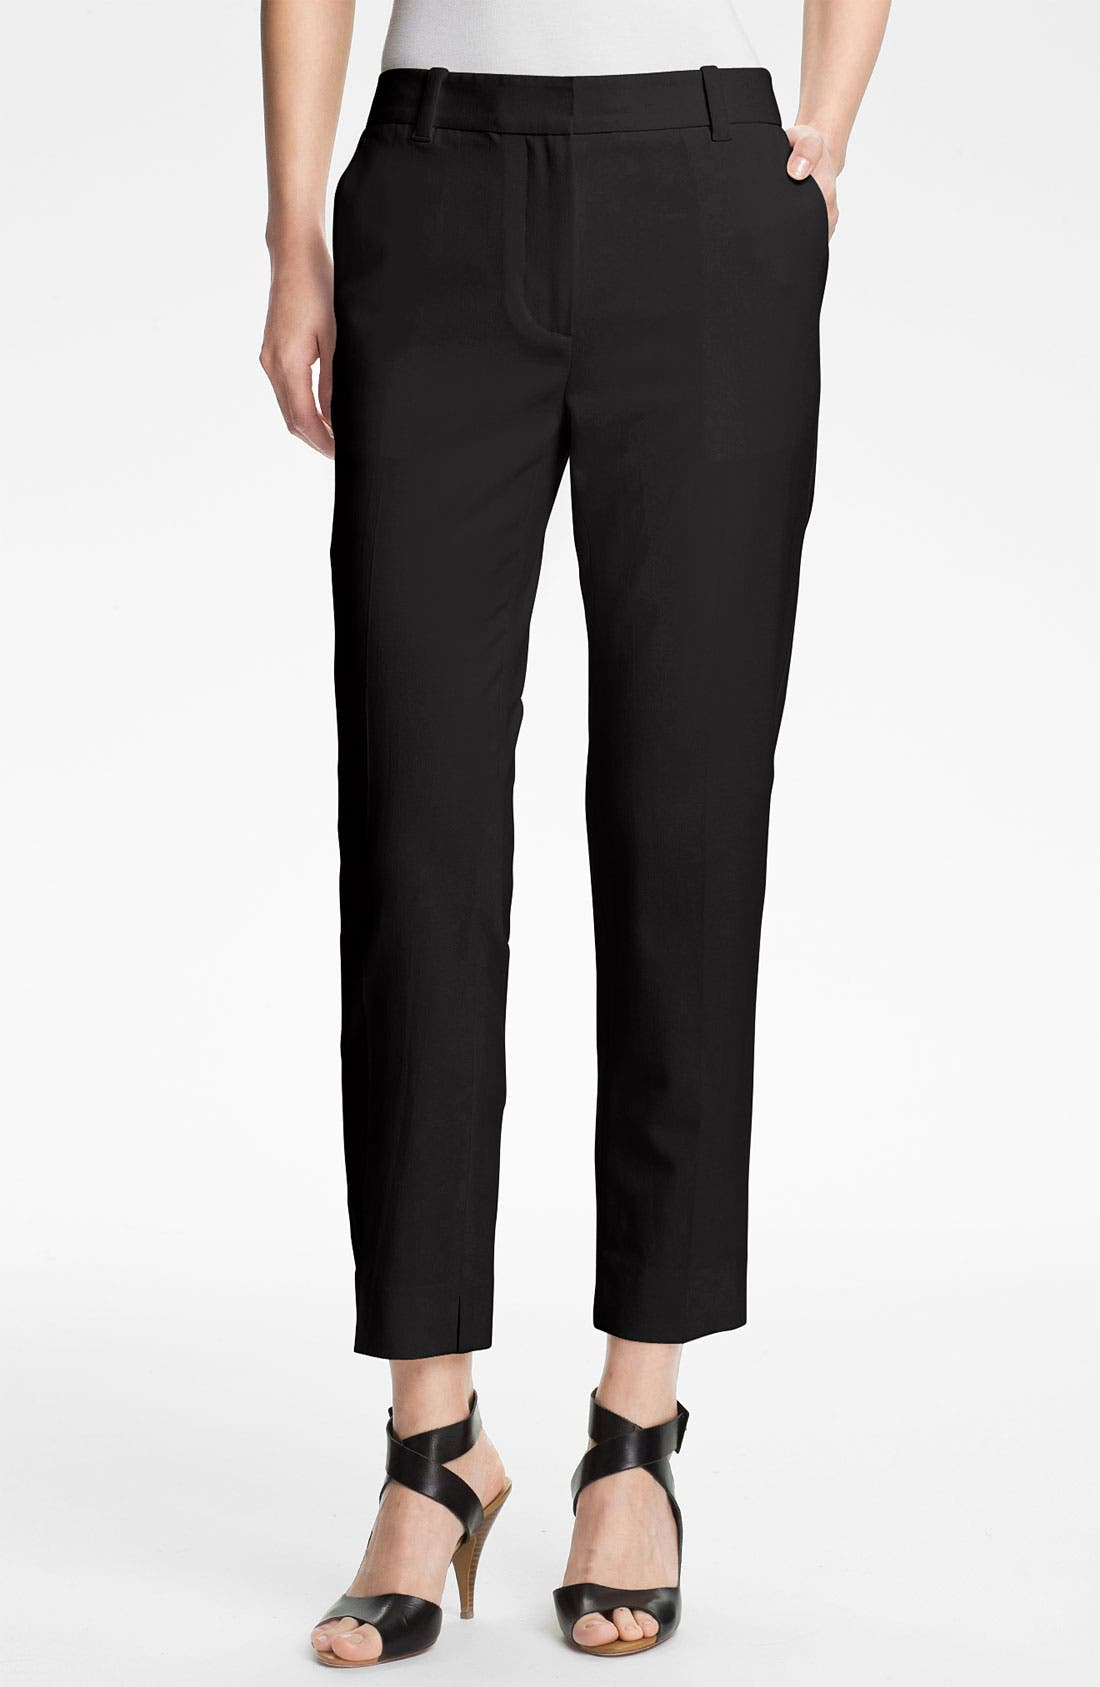 Alternate Image 1 Selected - 3.1 Phillip Lim Crop Stretch Wool Trousers